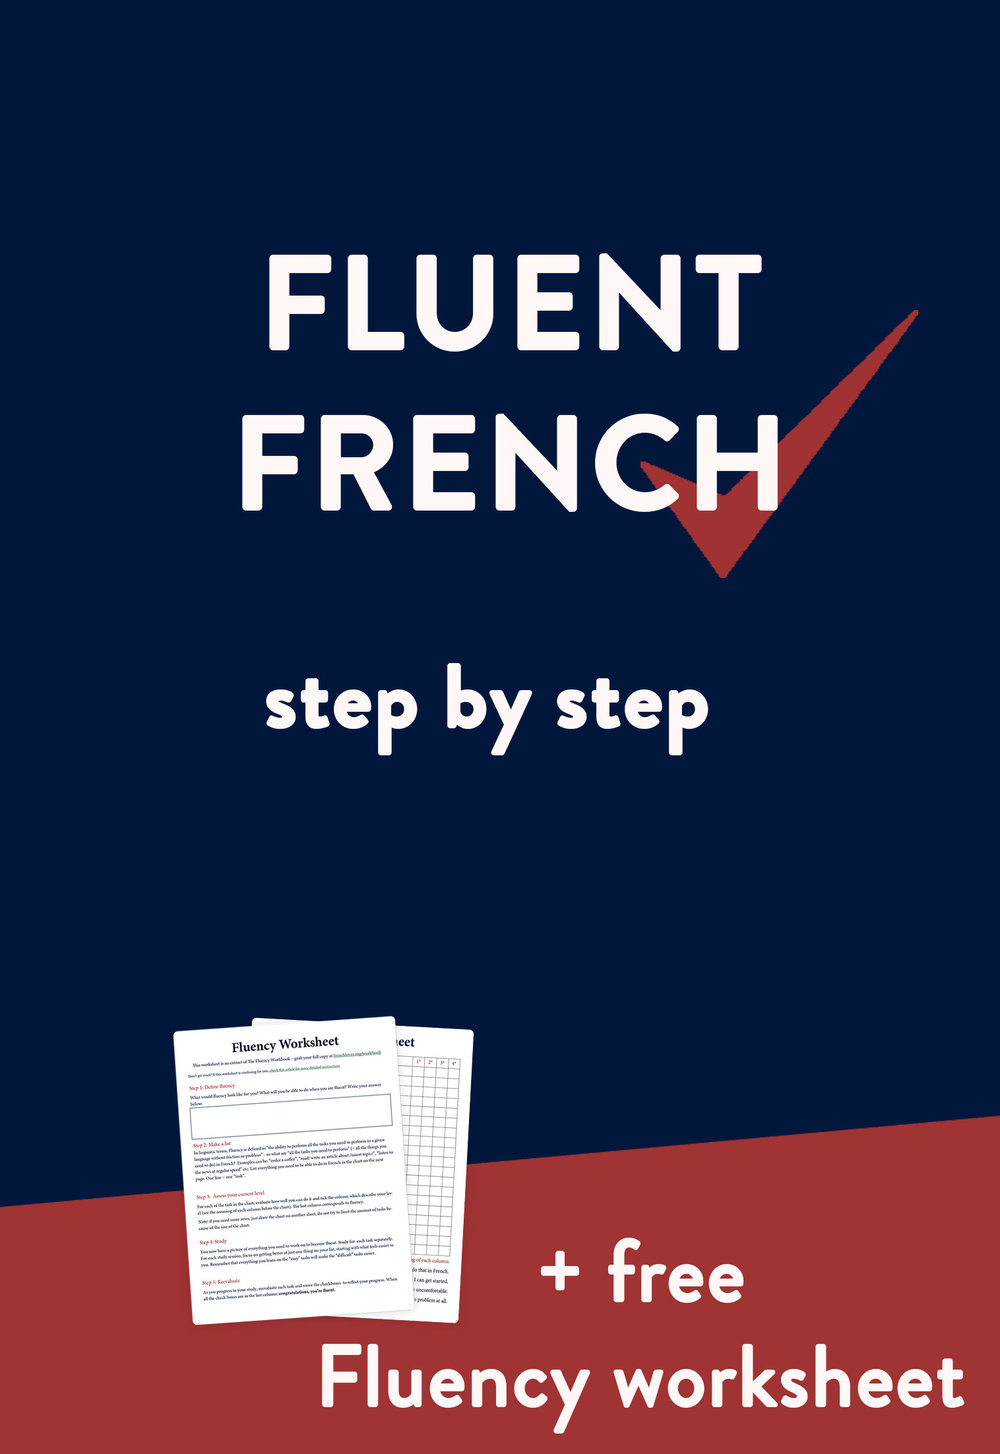 Learn to speak Fluent French step by step